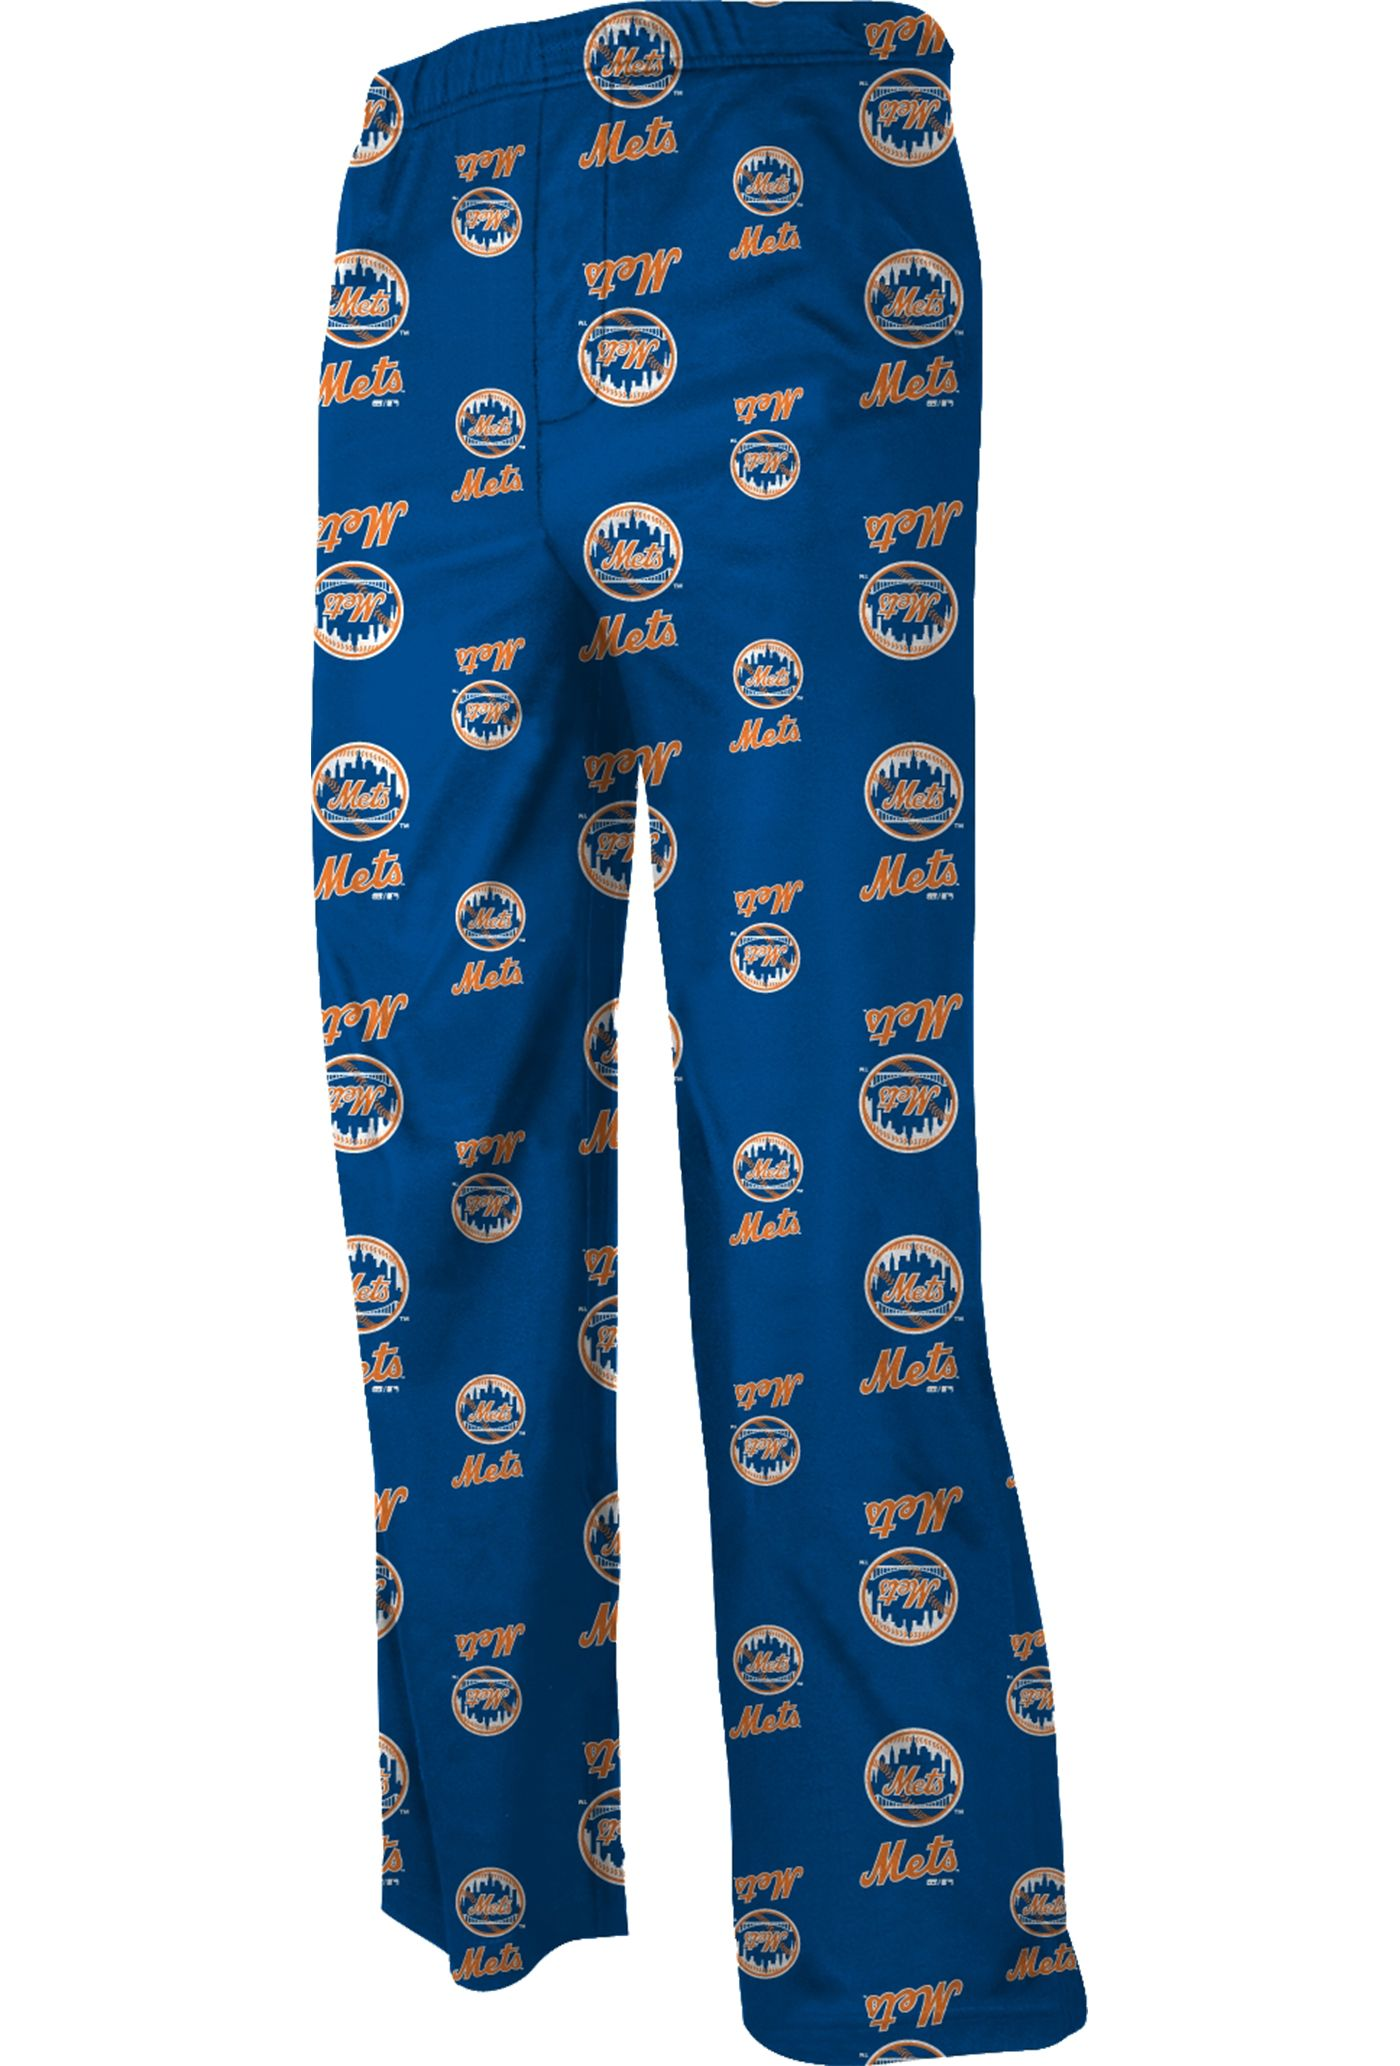 Majestic Youth New York Mets Team Logo Pajama Pants